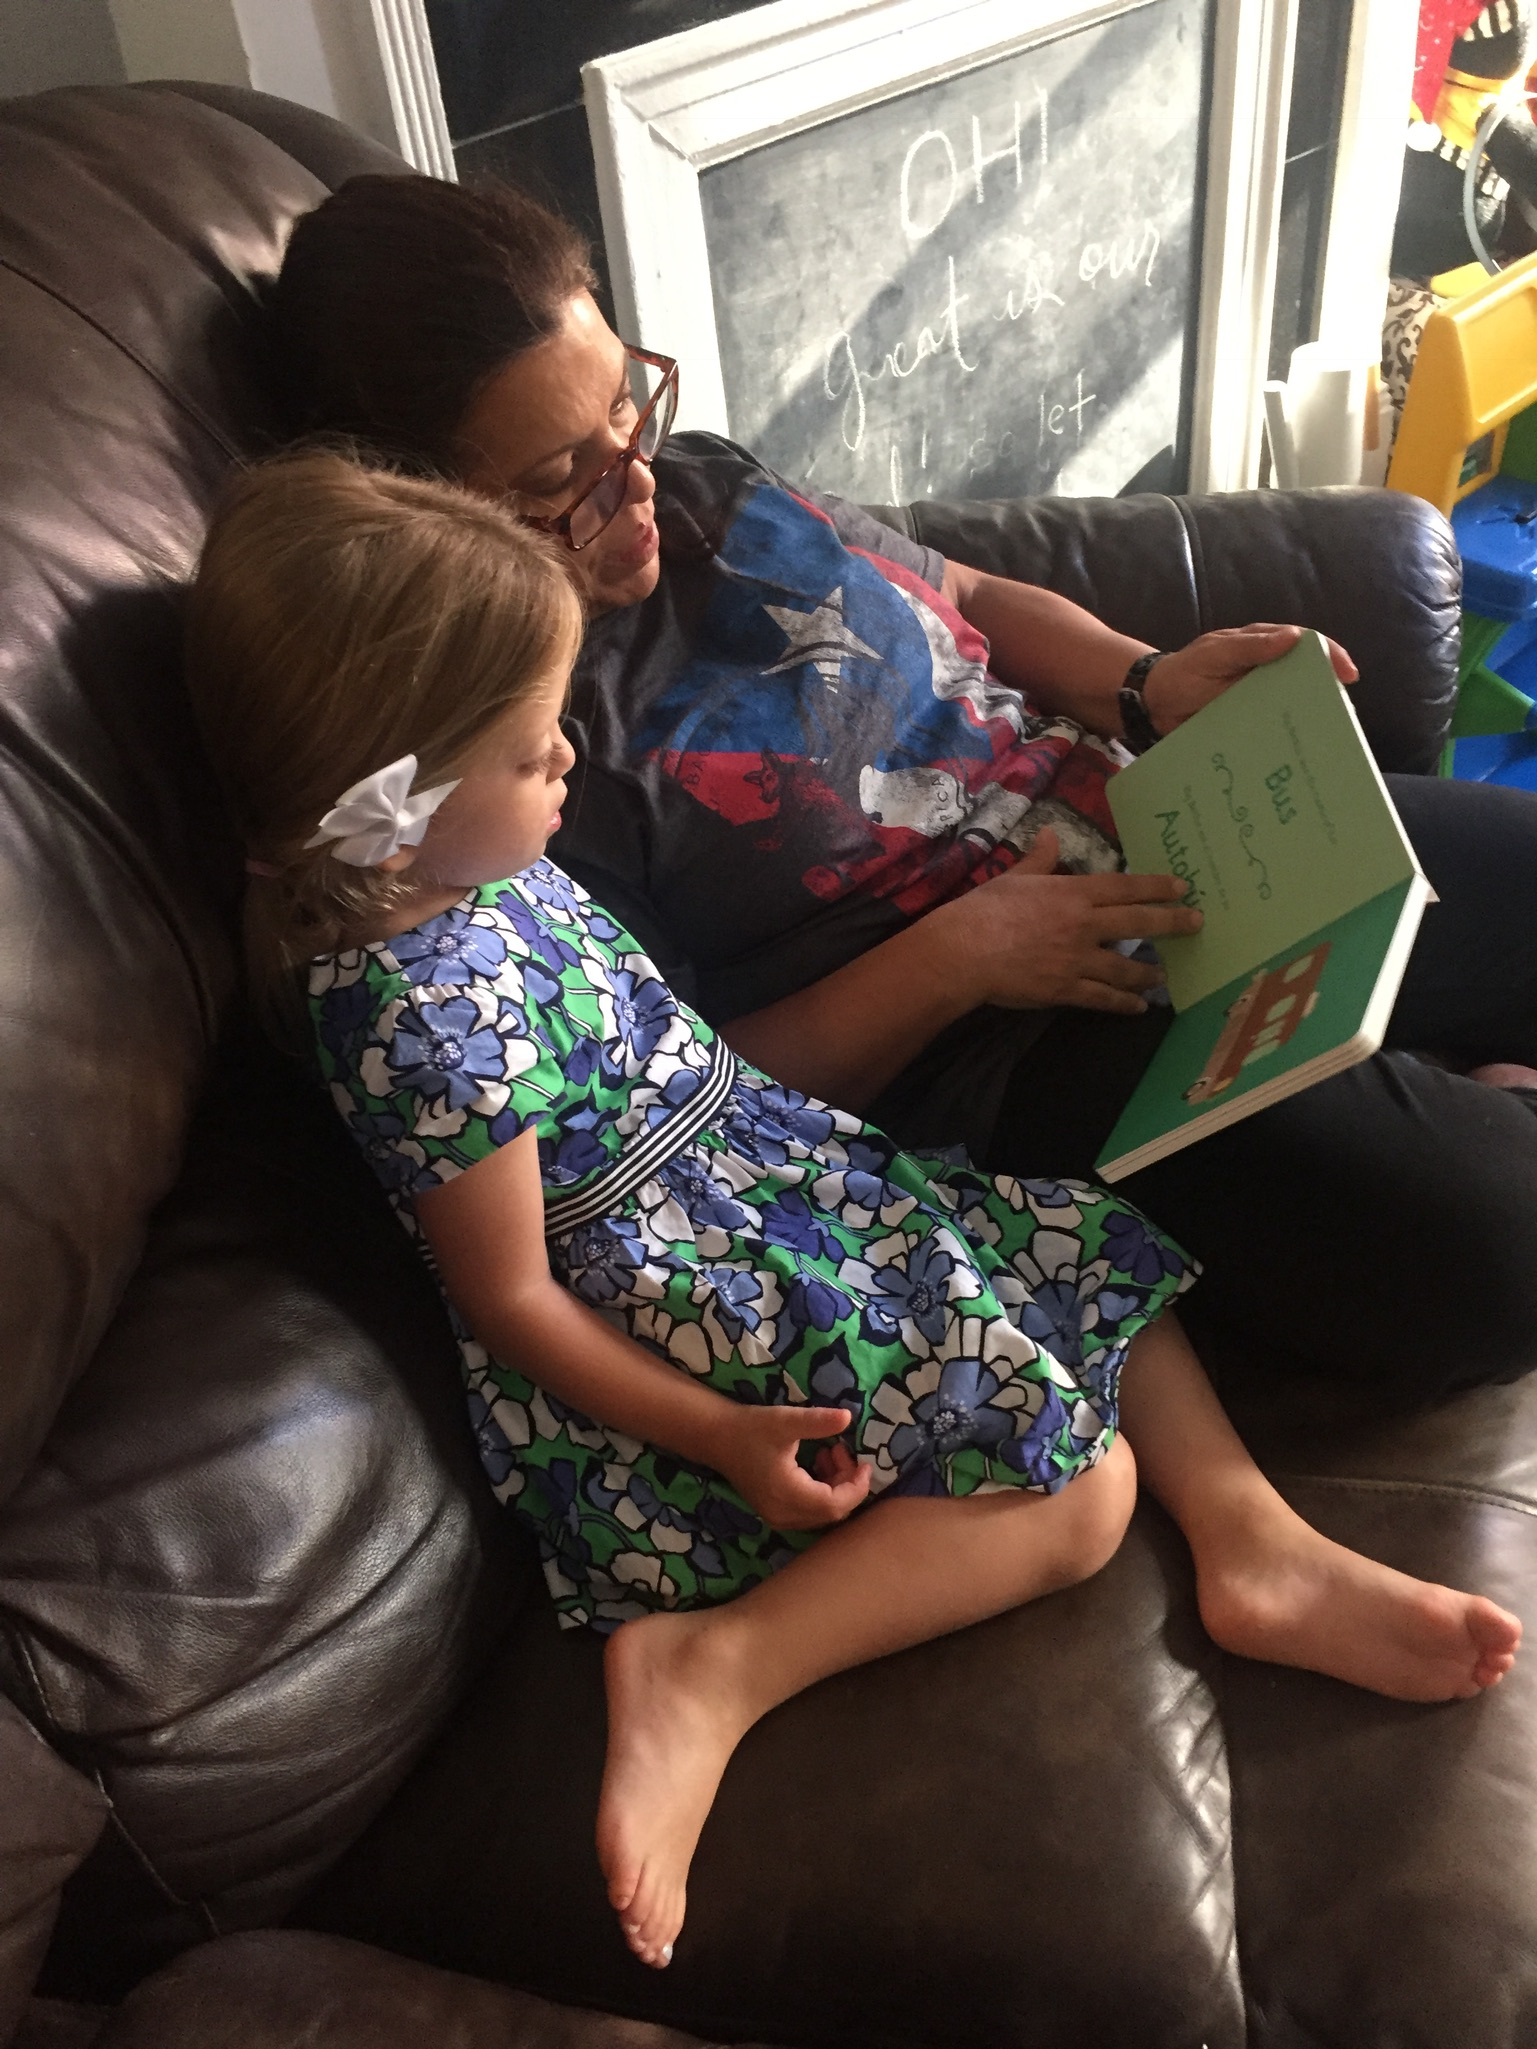 And yet another fave. Abuela reading the Selena book from Titi Eli to Lucie.